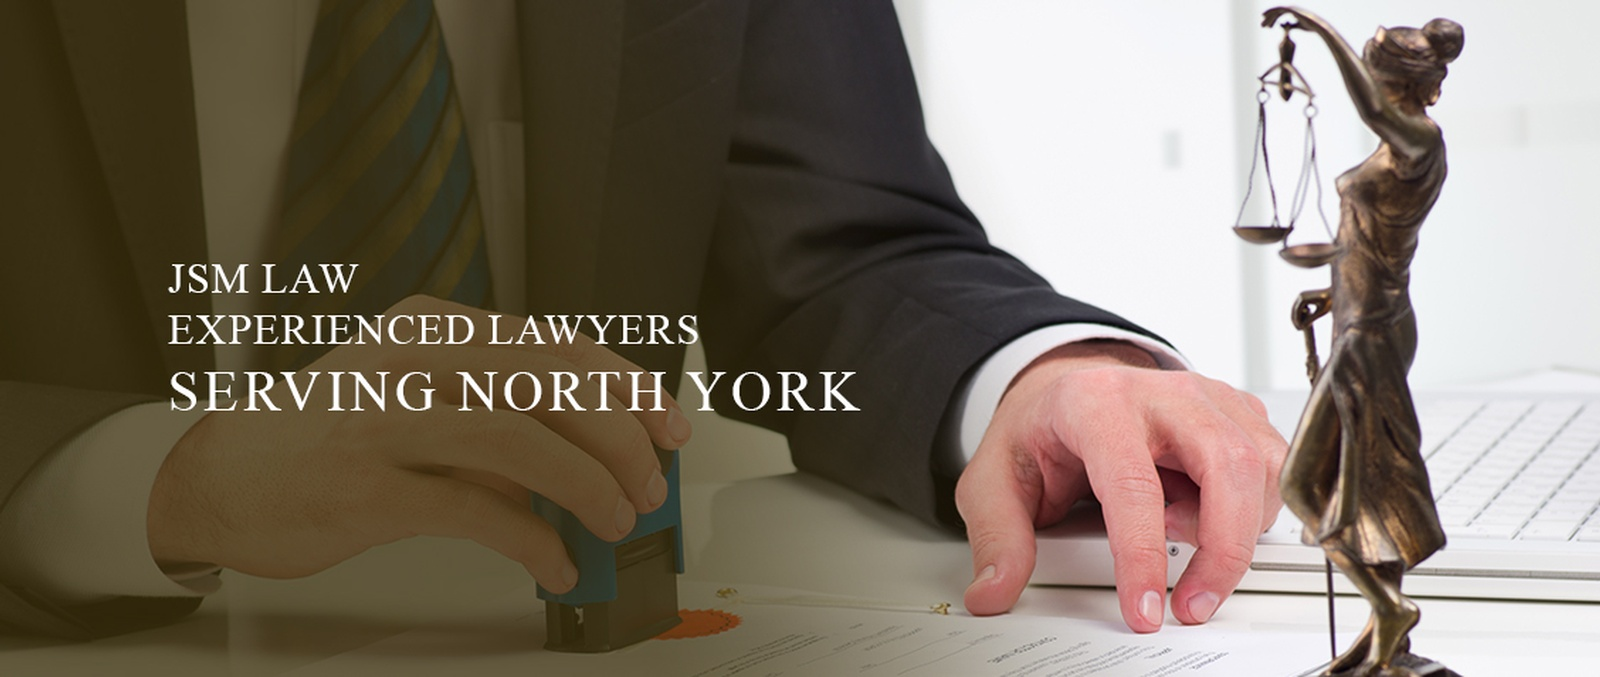 CORPORATE, CRIMINAL AND PERSONAL INJURY LAWYERS NORTH YORK ON